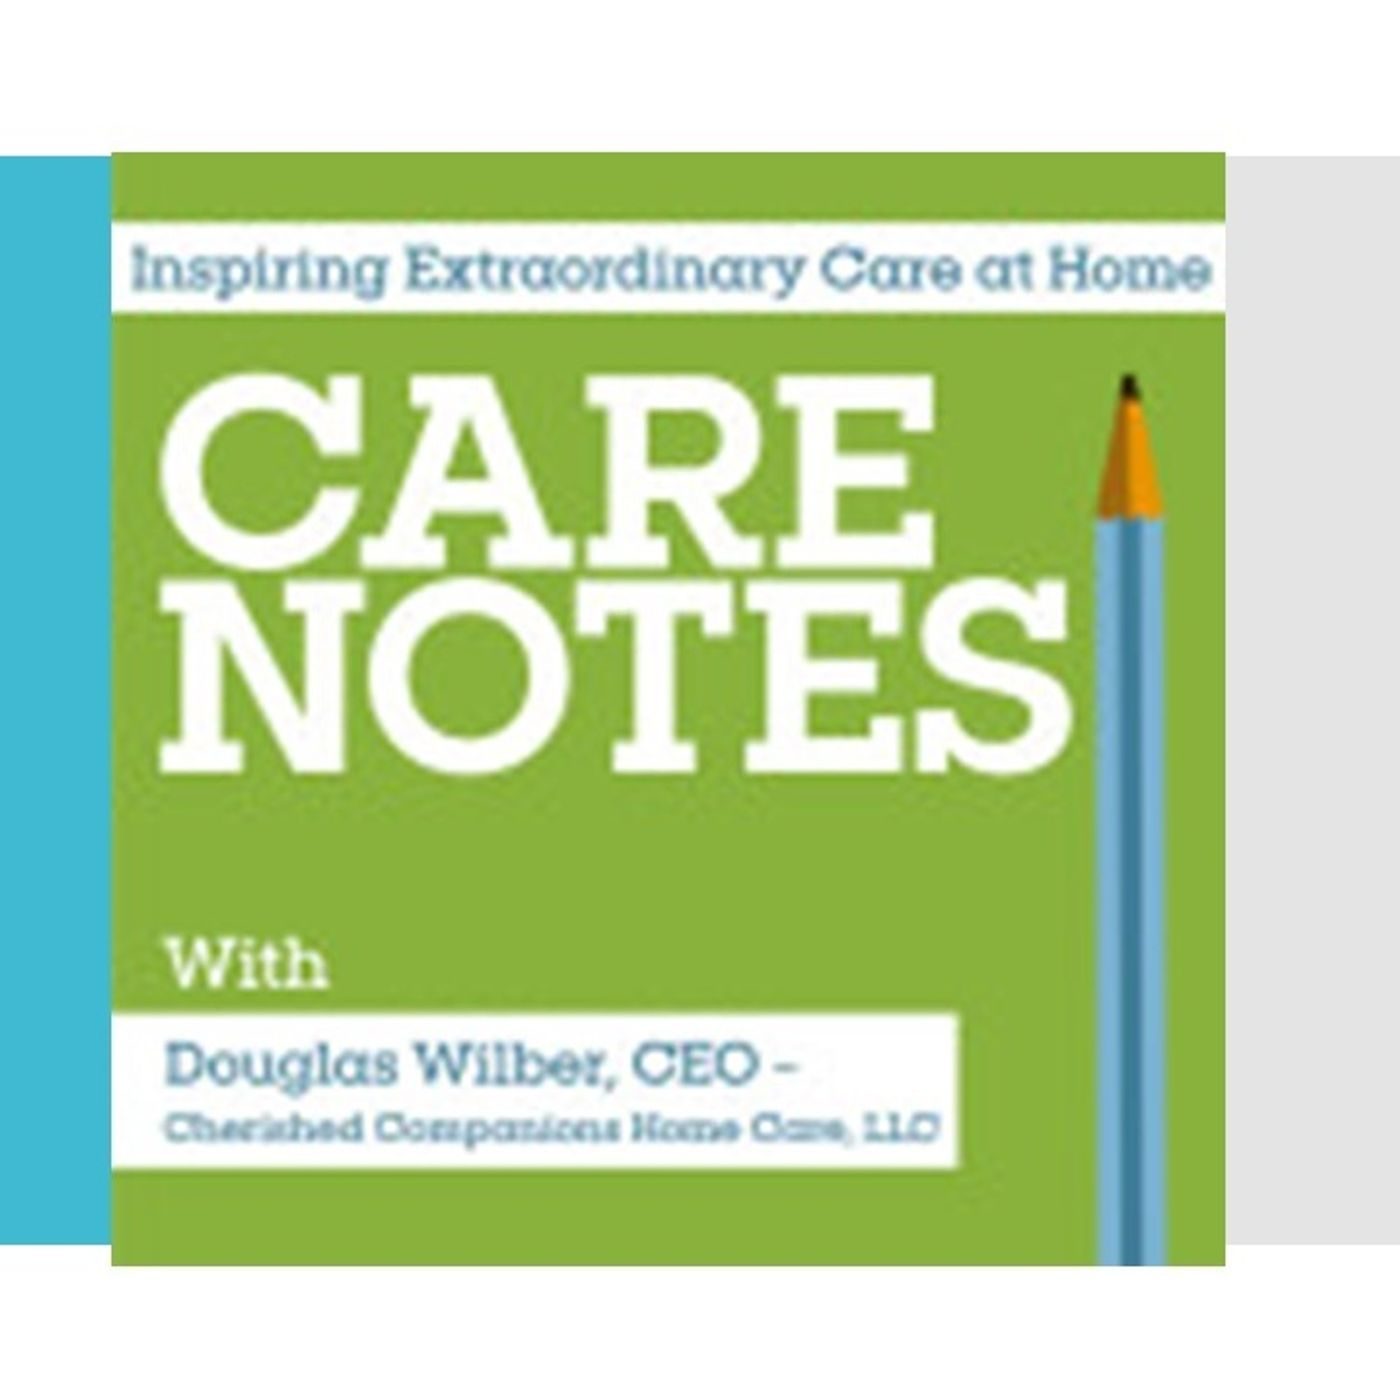 10care-notes-with-doug-wilber-12_19_18